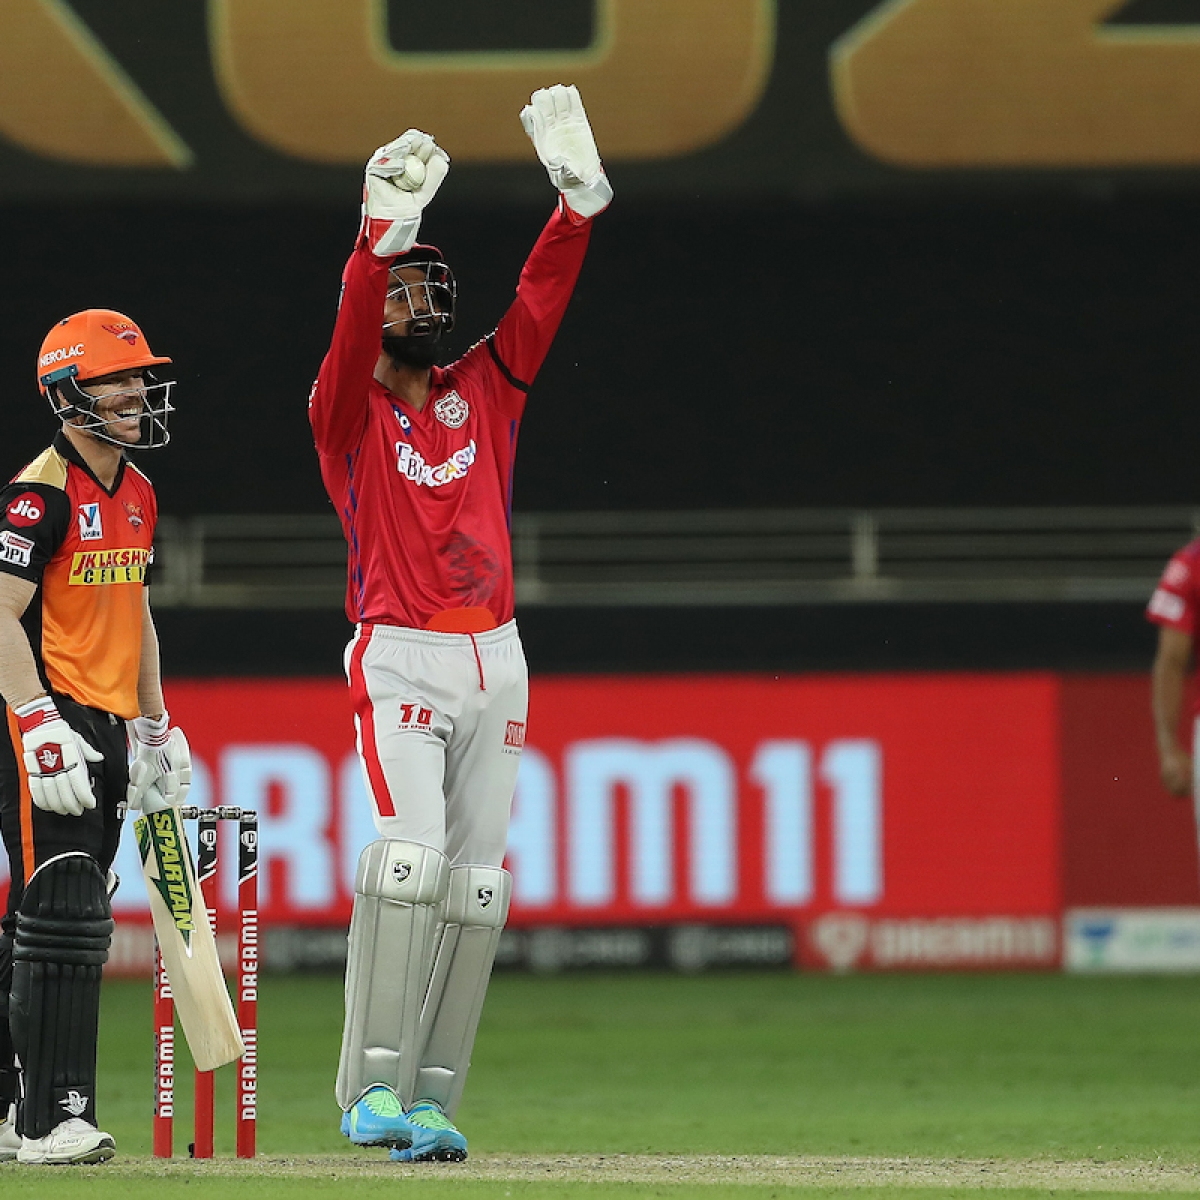 IPL 2020: Which team tops the points table as of October 25, 2020?